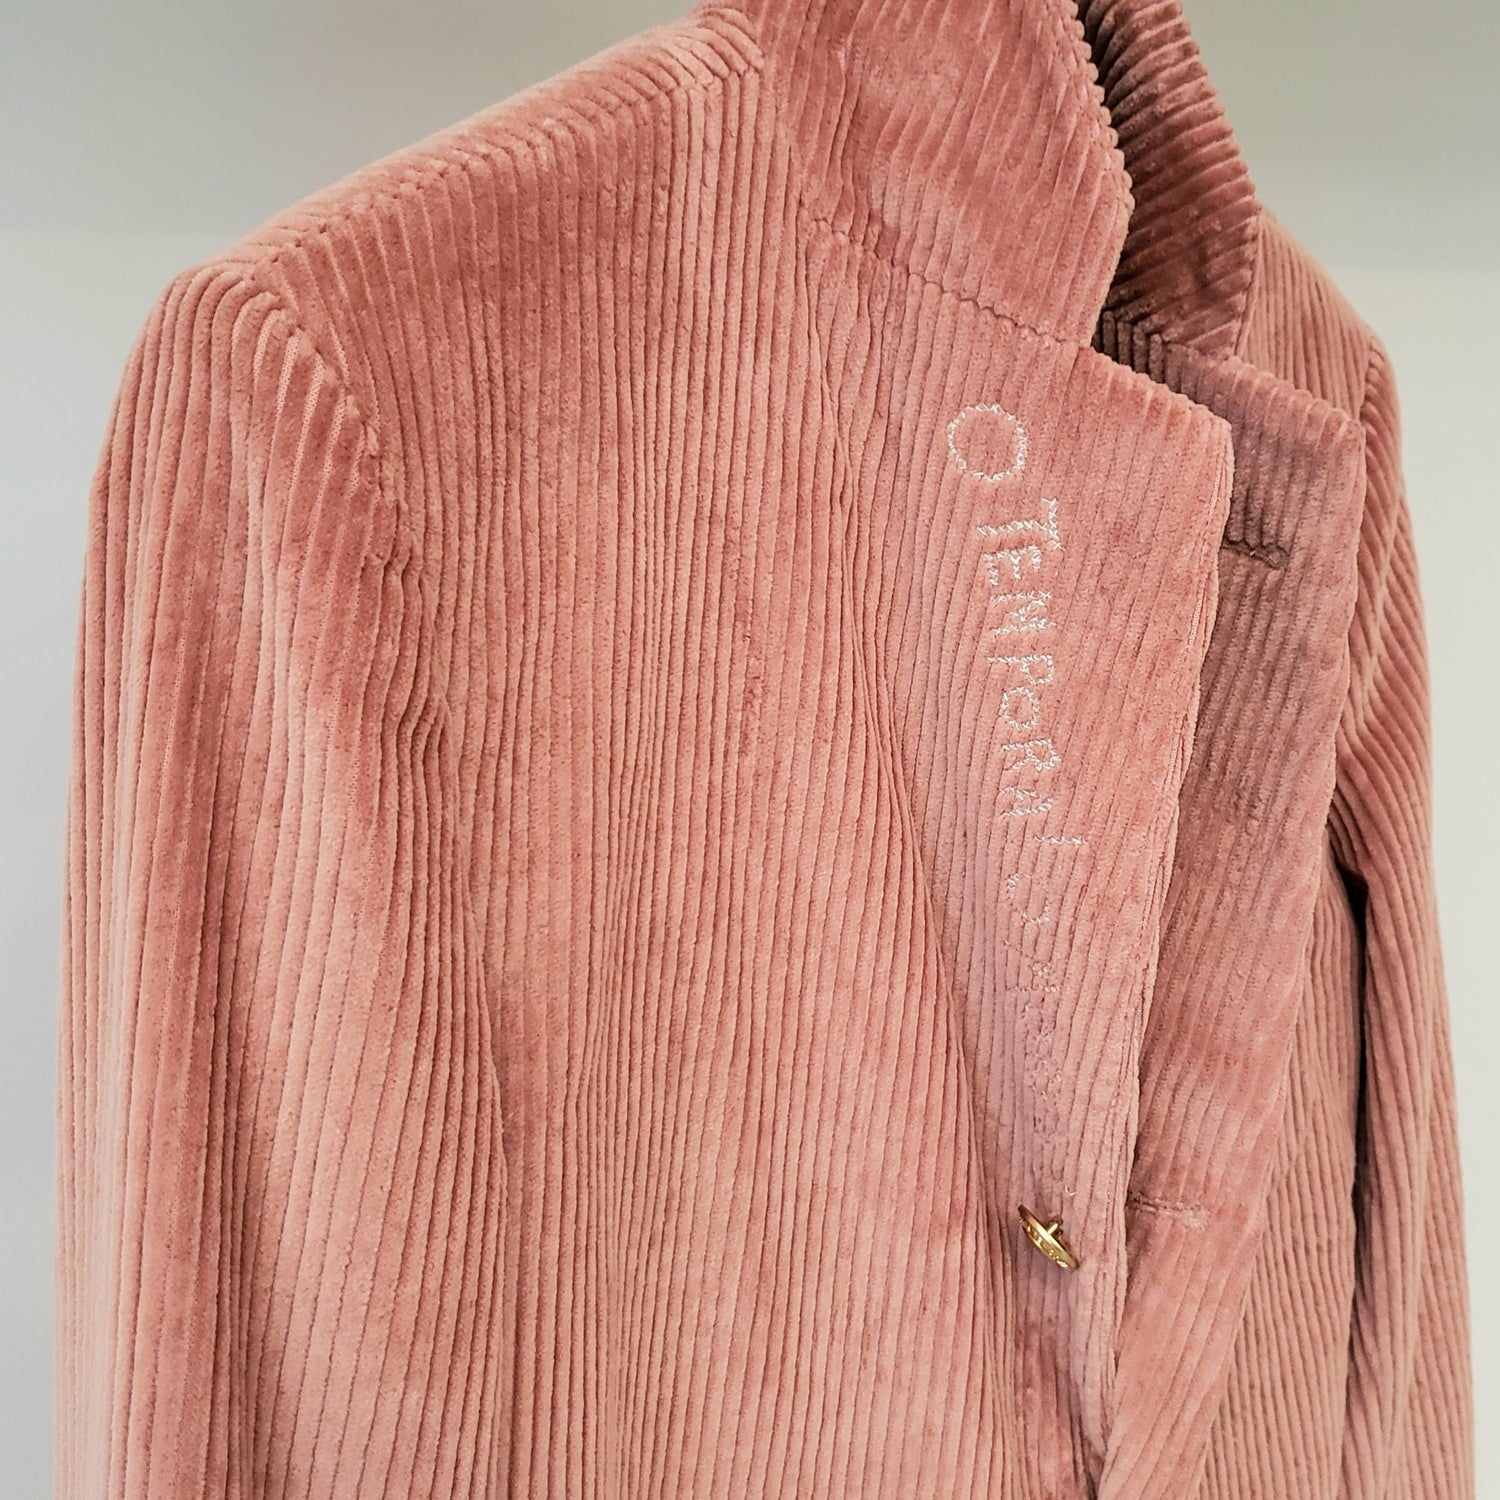 Rowing Blazers Dusty Rose Corduroy Jacket